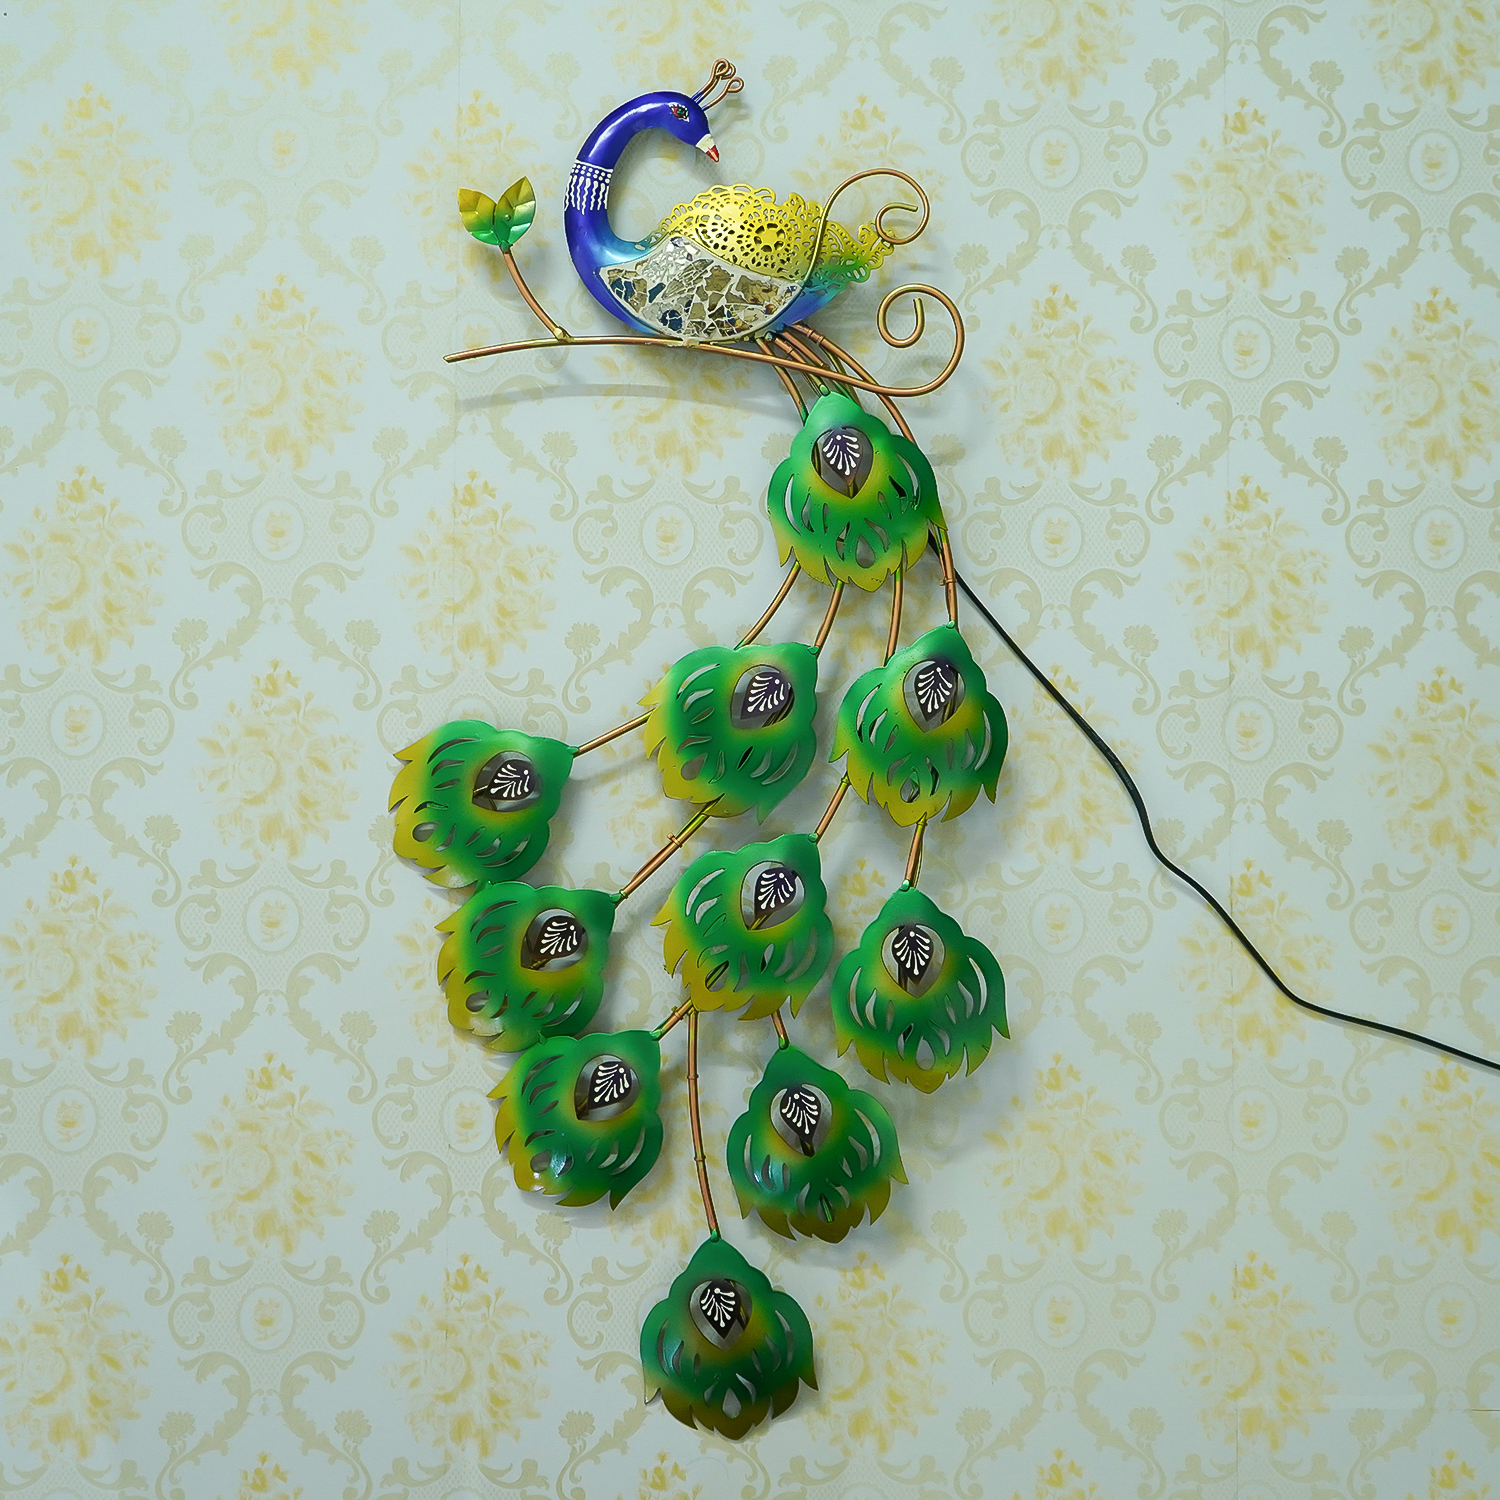 Colorful Dancing Peocock Handcrafted Iron Wall Hanging with background LEDs Indian Home Decor